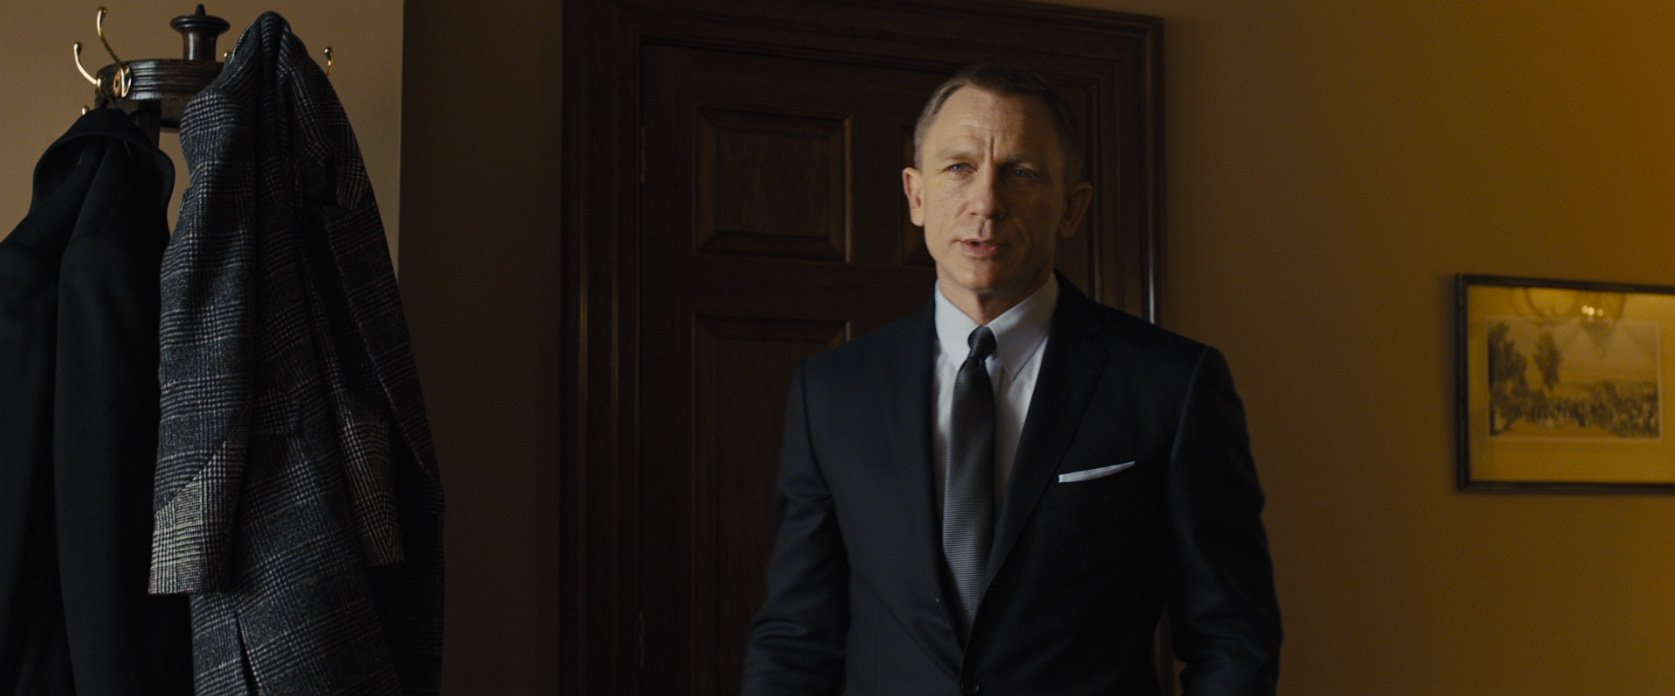 The Navy Small Herringbone Suit In Skyfall The Suits Of James Bond